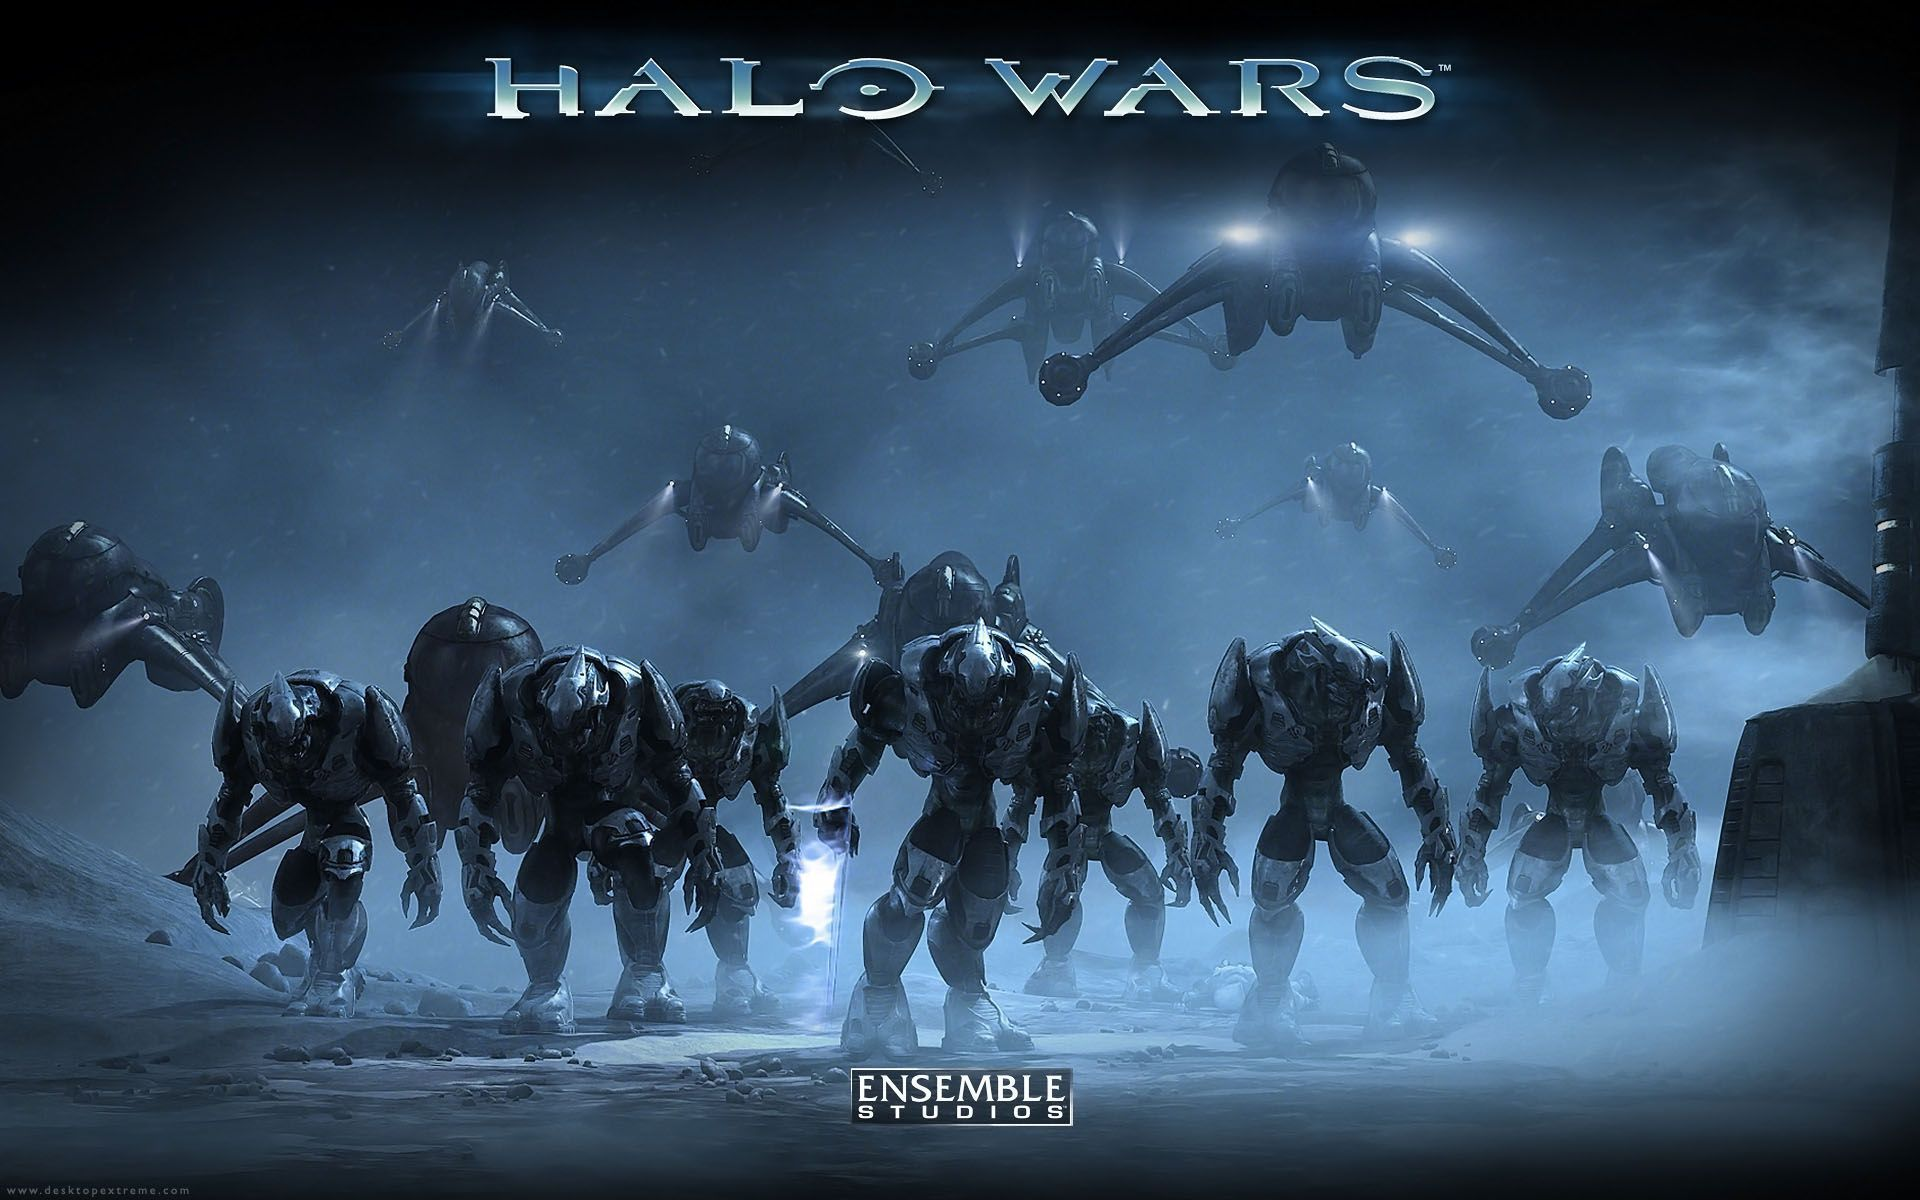 Halo Wars Xbox 360 Game 805.74 Kb